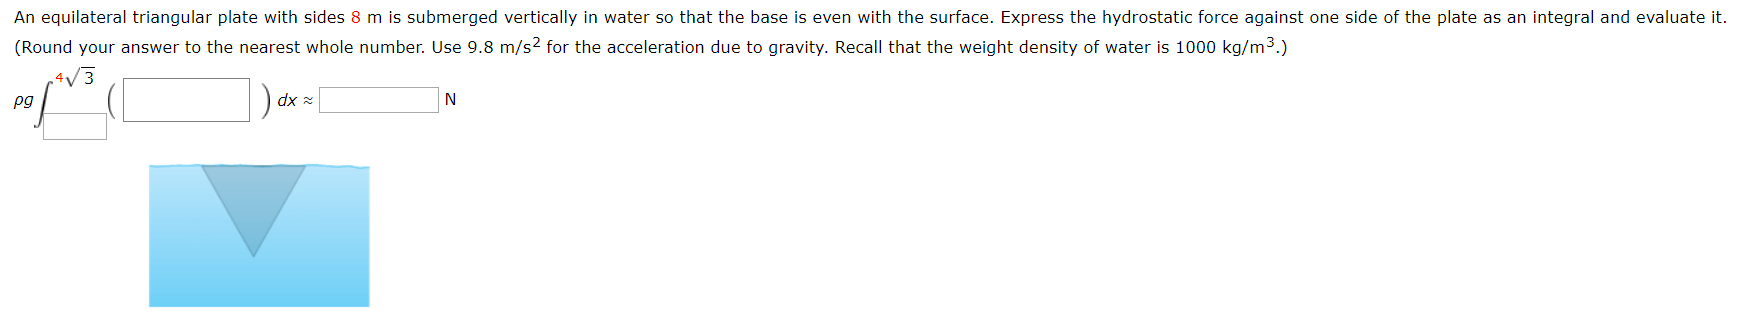 An equilateral triangular plate with sides 8 m is submerged vertically in water so that the base is even with the surface. Express the hydrostatic force against one side of the plate as an integral and evaluate it. (Round your answer to the nearest whole number. Use 9.8 m/s2 for the acceleration due to gravity. Recall that the weight density of water is 1000 kg/m3.) dx N pg